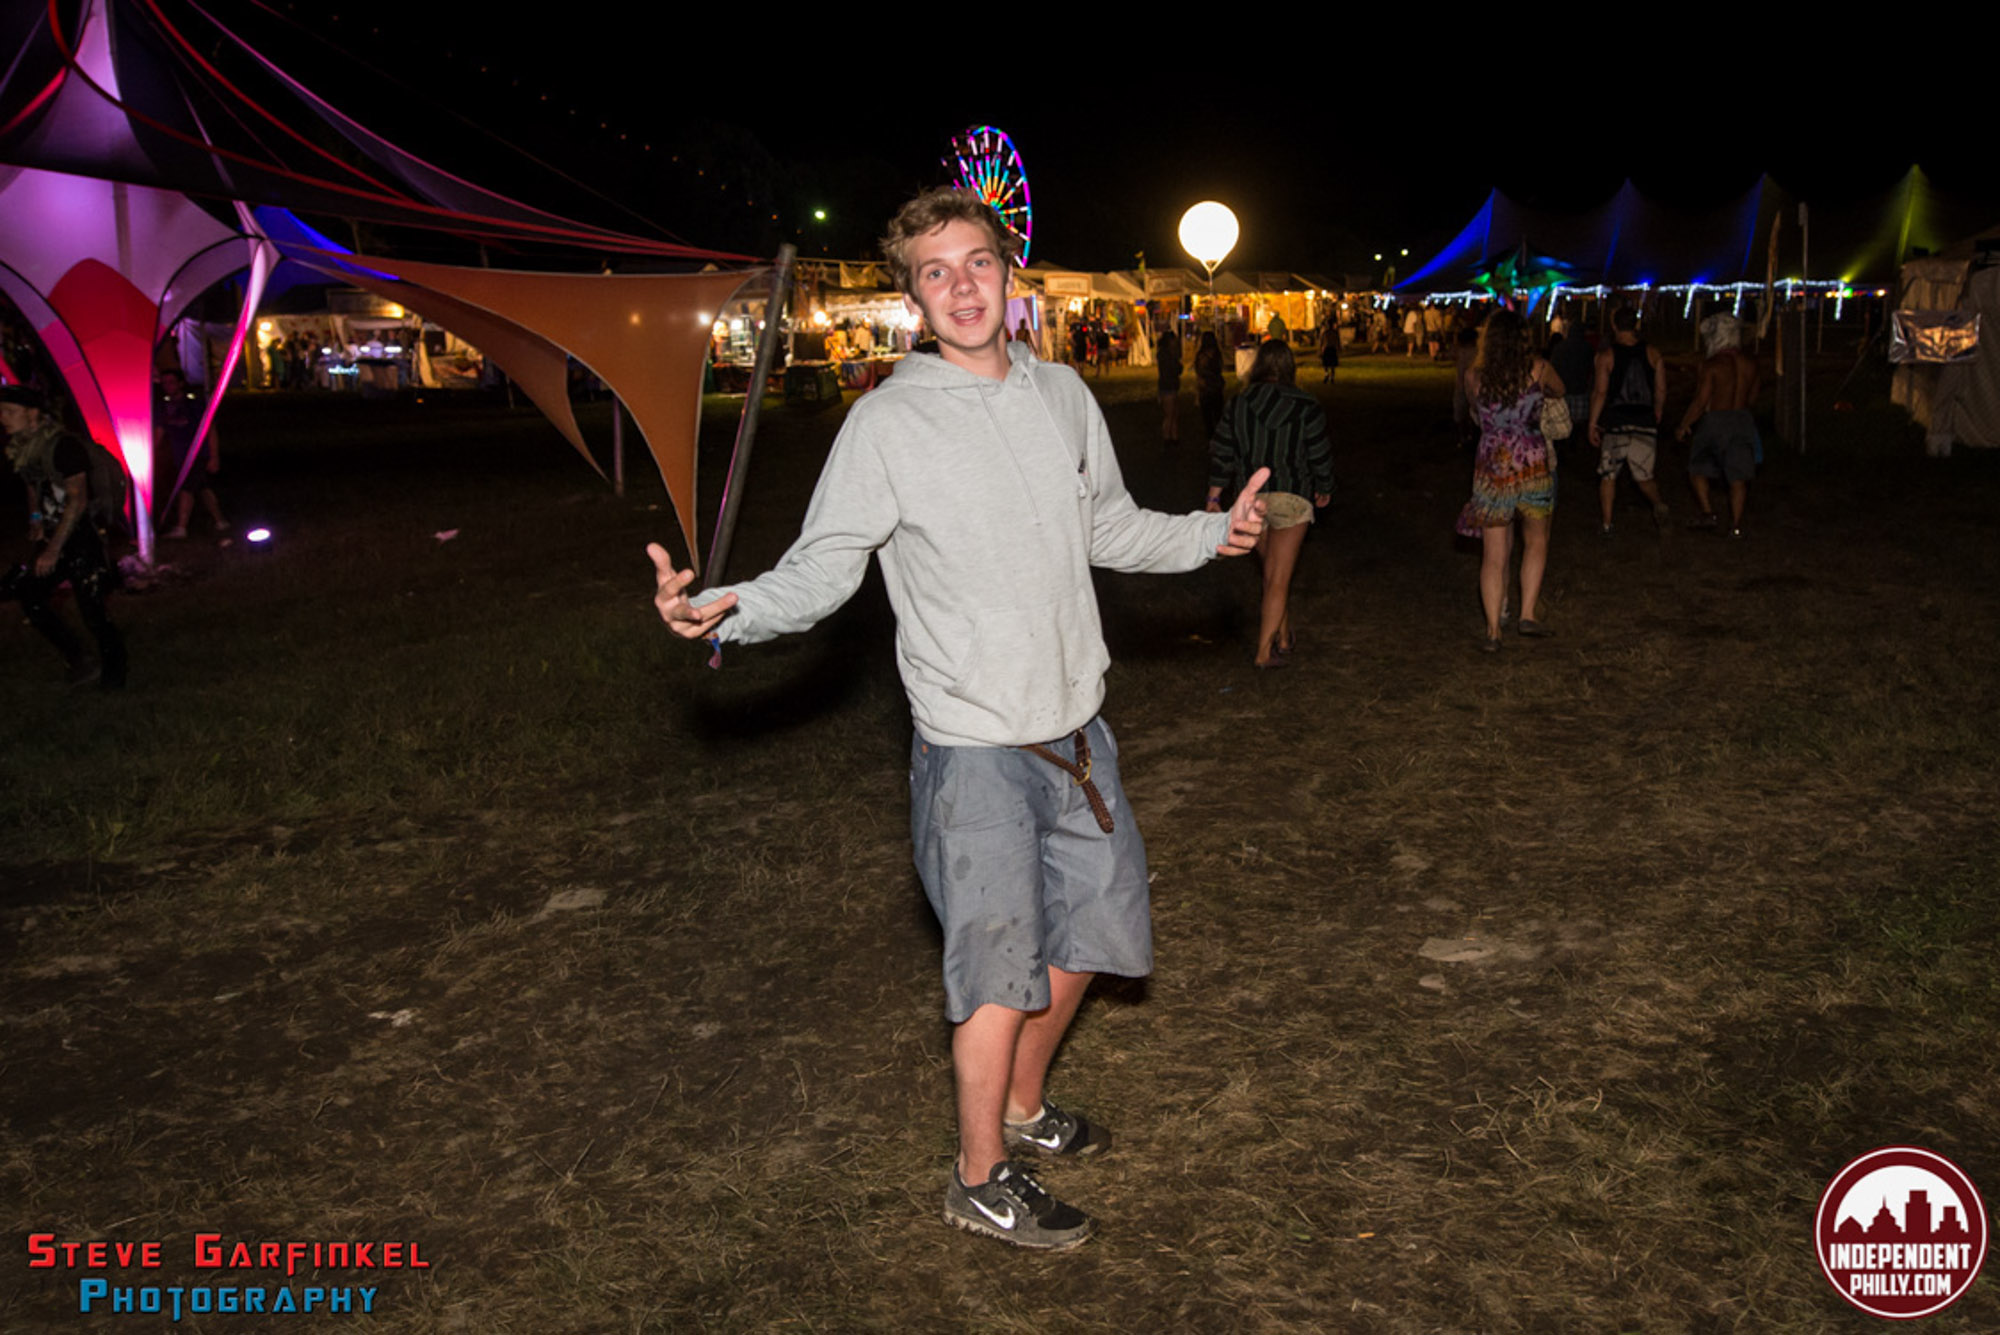 Camp_Bisco-85